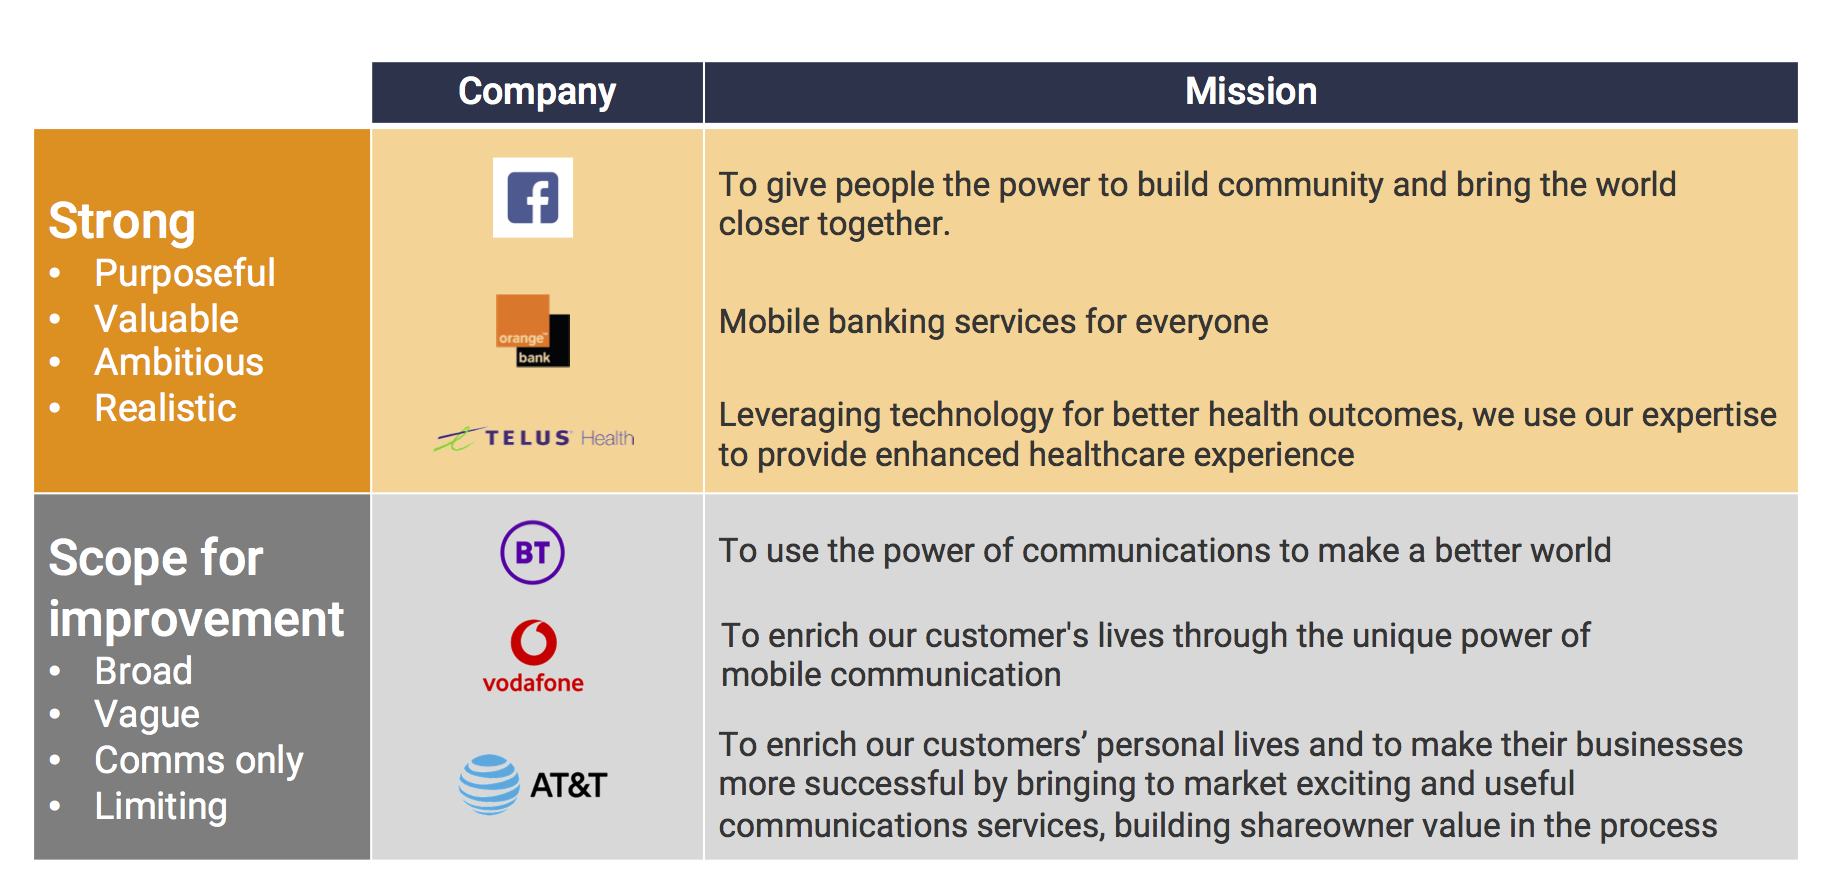 Compelling purpose for telcos